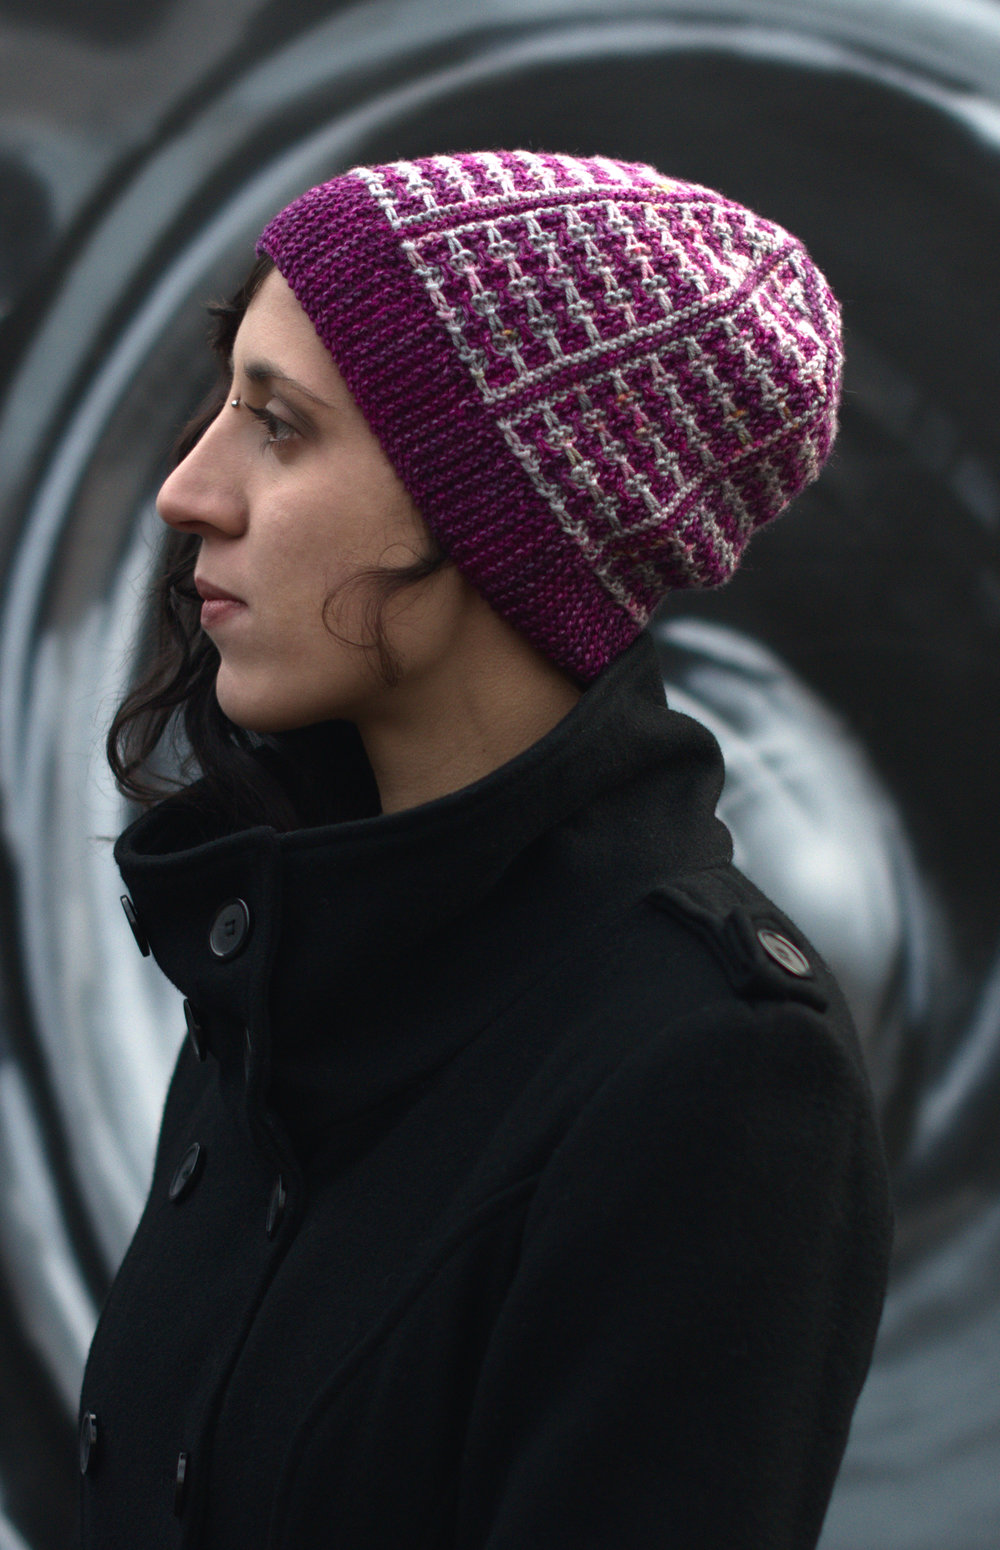 Matriks sideways knit slouchy Hat hand knitting pattern for hand-dyed DK yarns